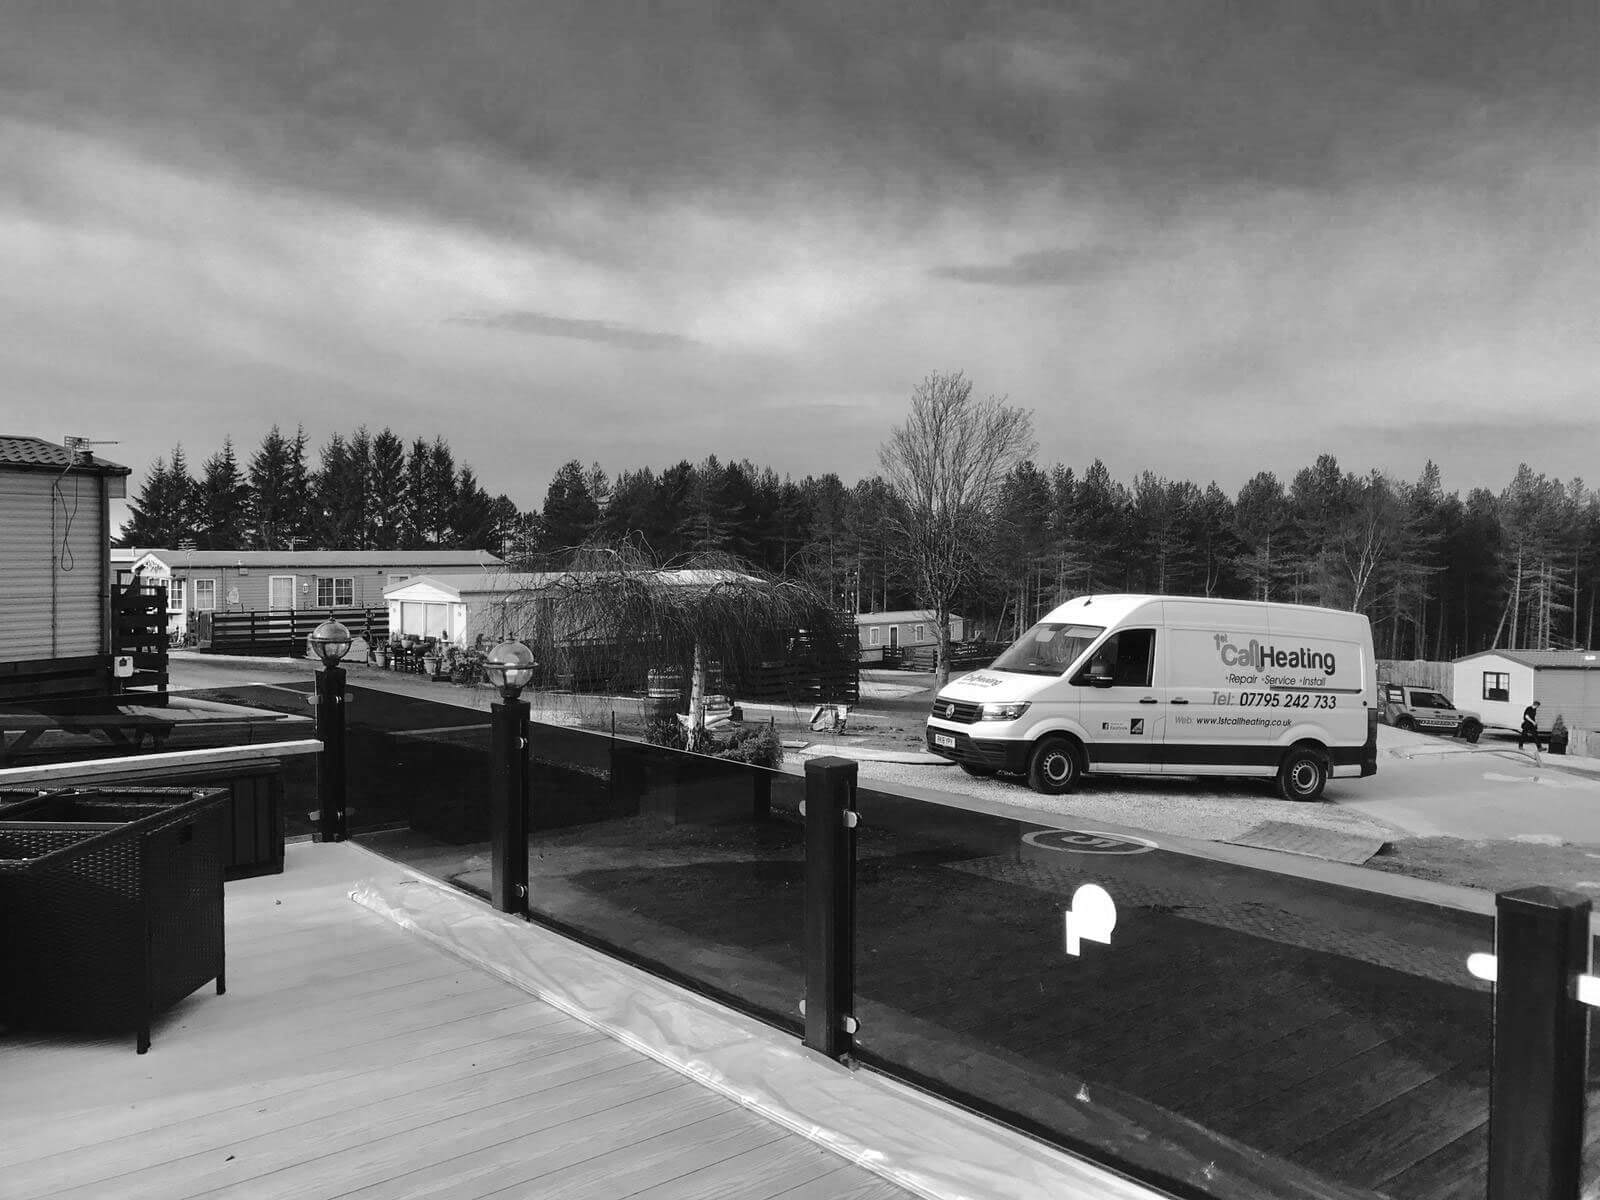 1st call heating & drainage - Van on caravan site